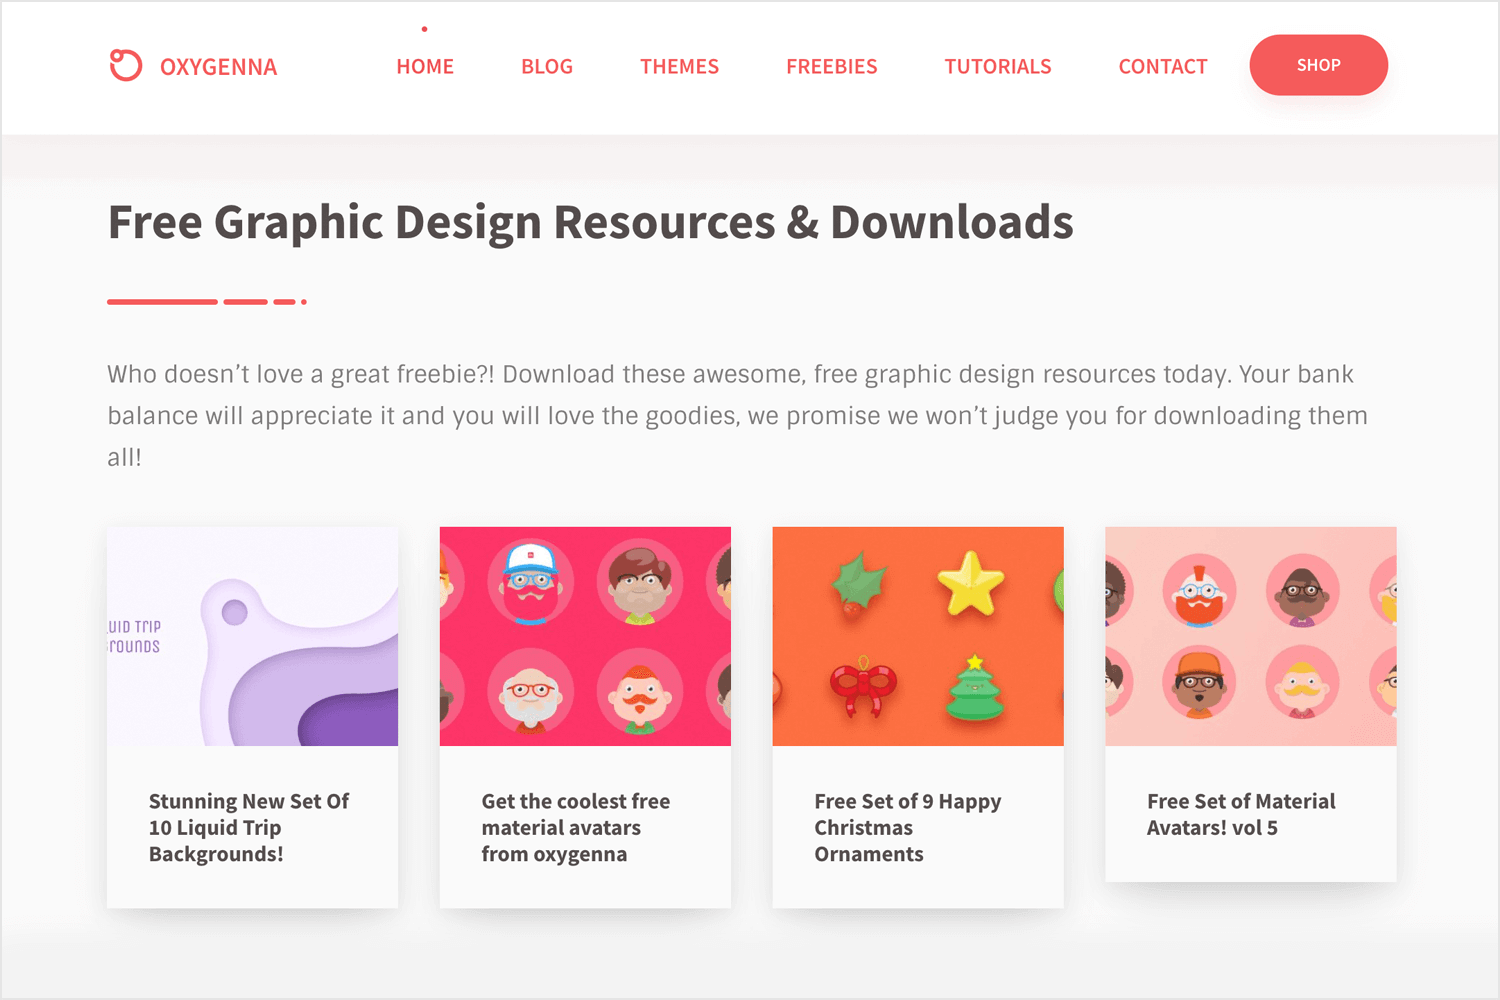 oxygenna for free design resources